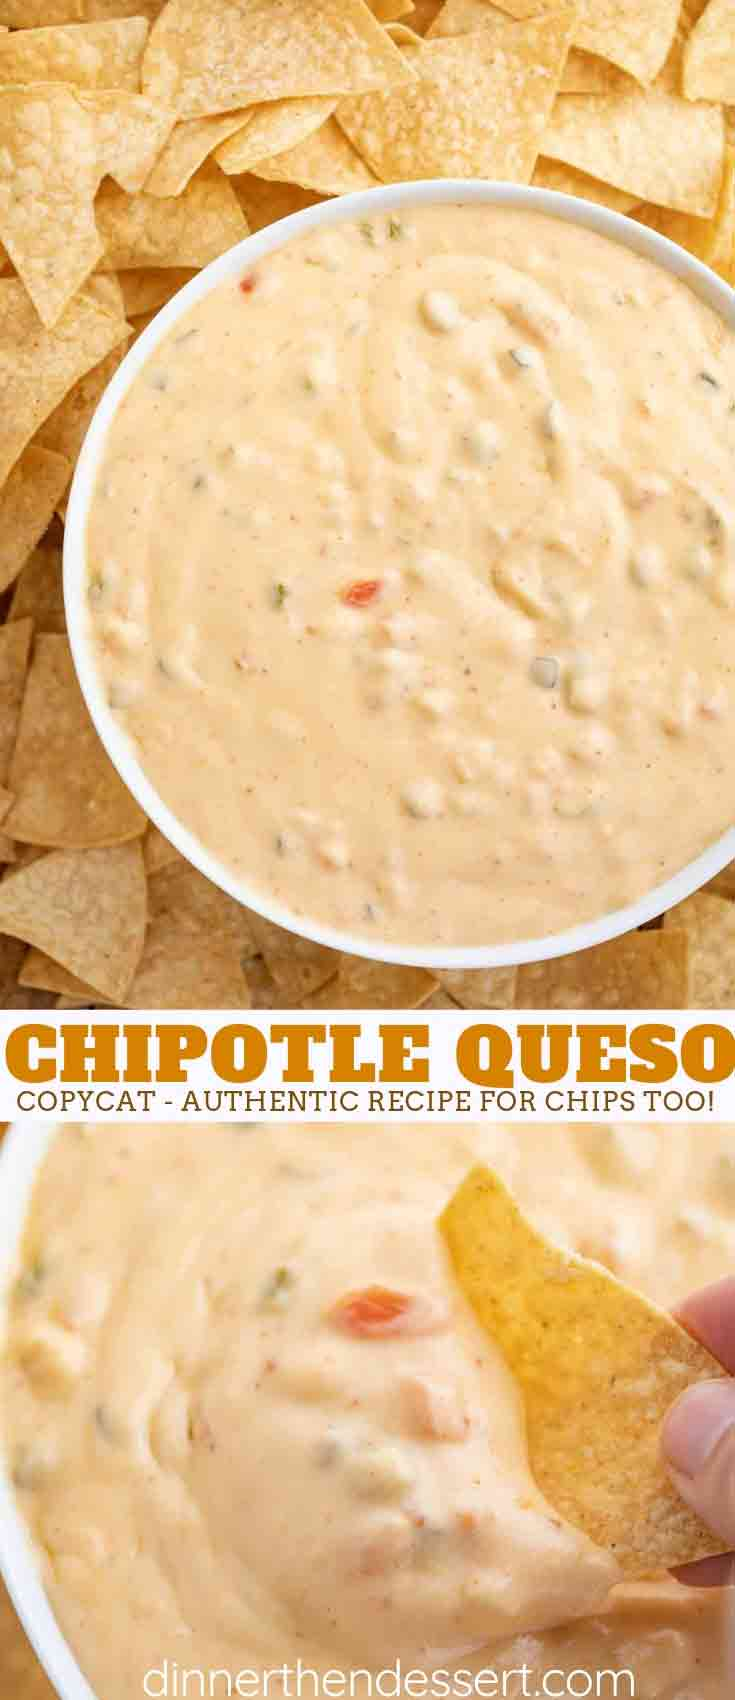 Chipotle Queso Copycat Recipe Is An All Natural Creamy Chili Cheese Dip With Tomatillo Salsa In Just 20 Minutes In 2020 Chipotle Queso Queso Recipe Chipotle Recipes